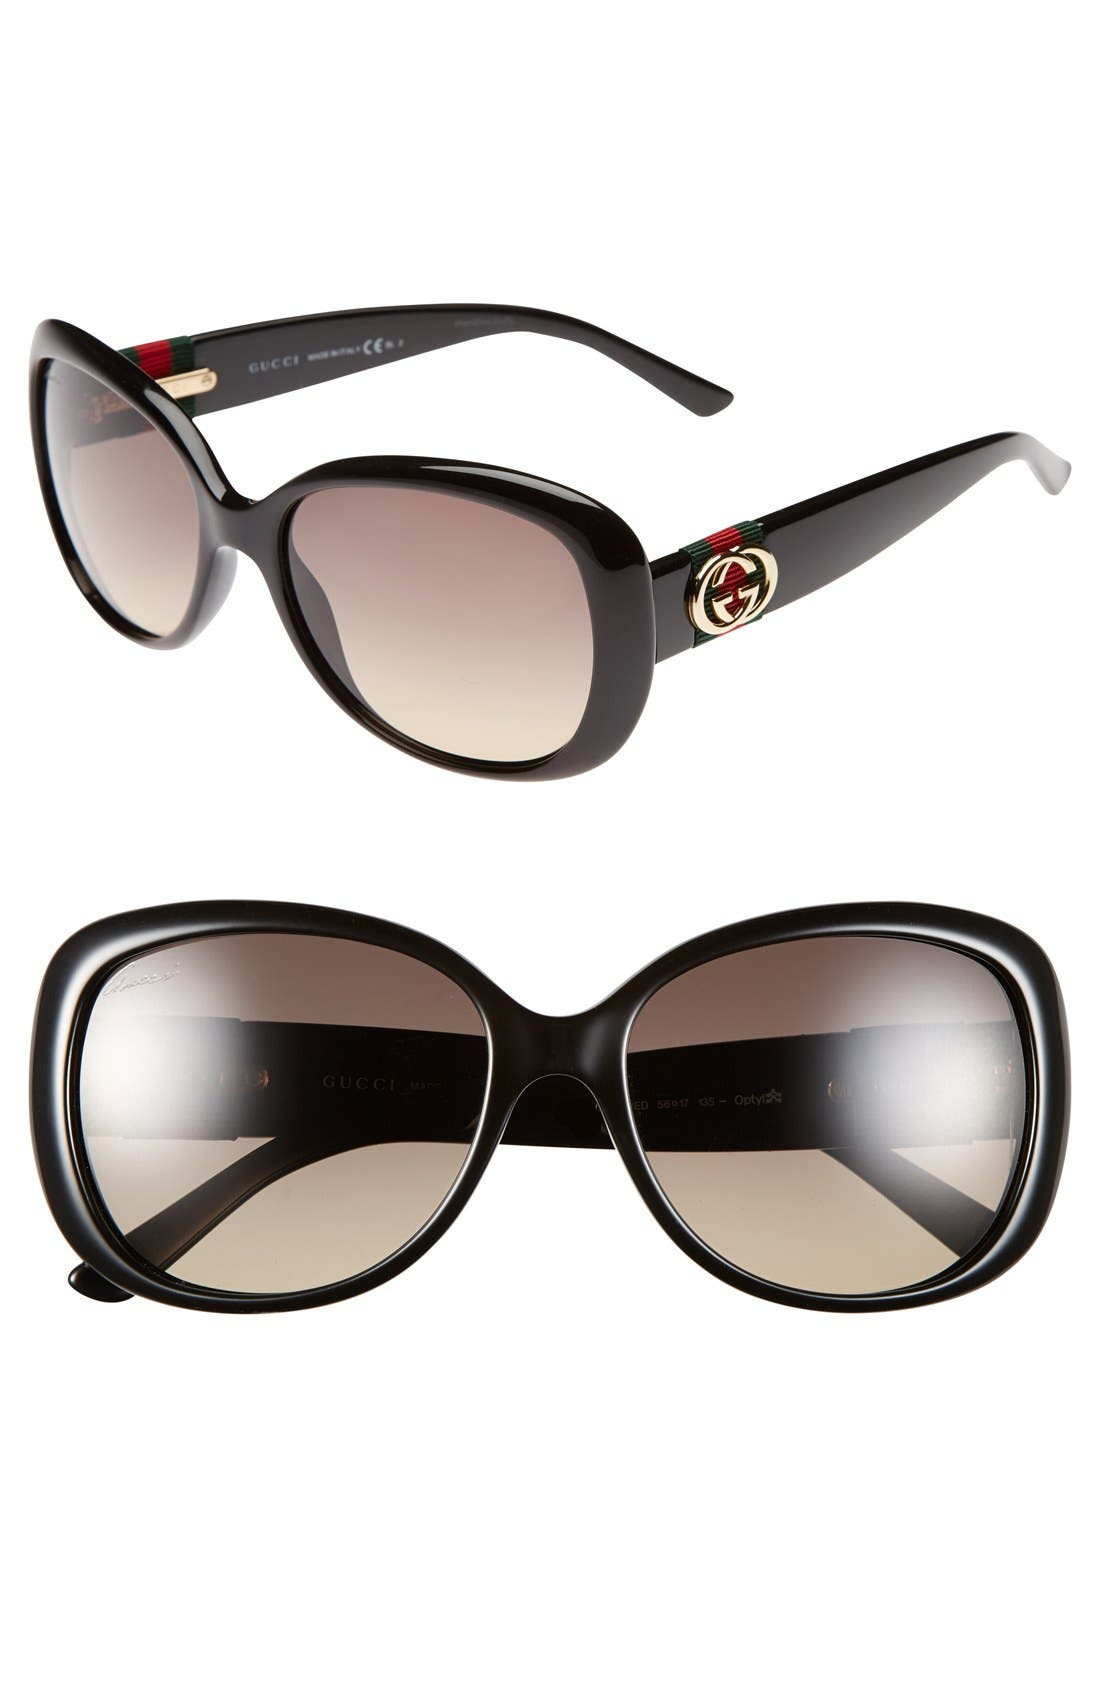 Main Image - Gucci 56mm Oversized Sunglasses